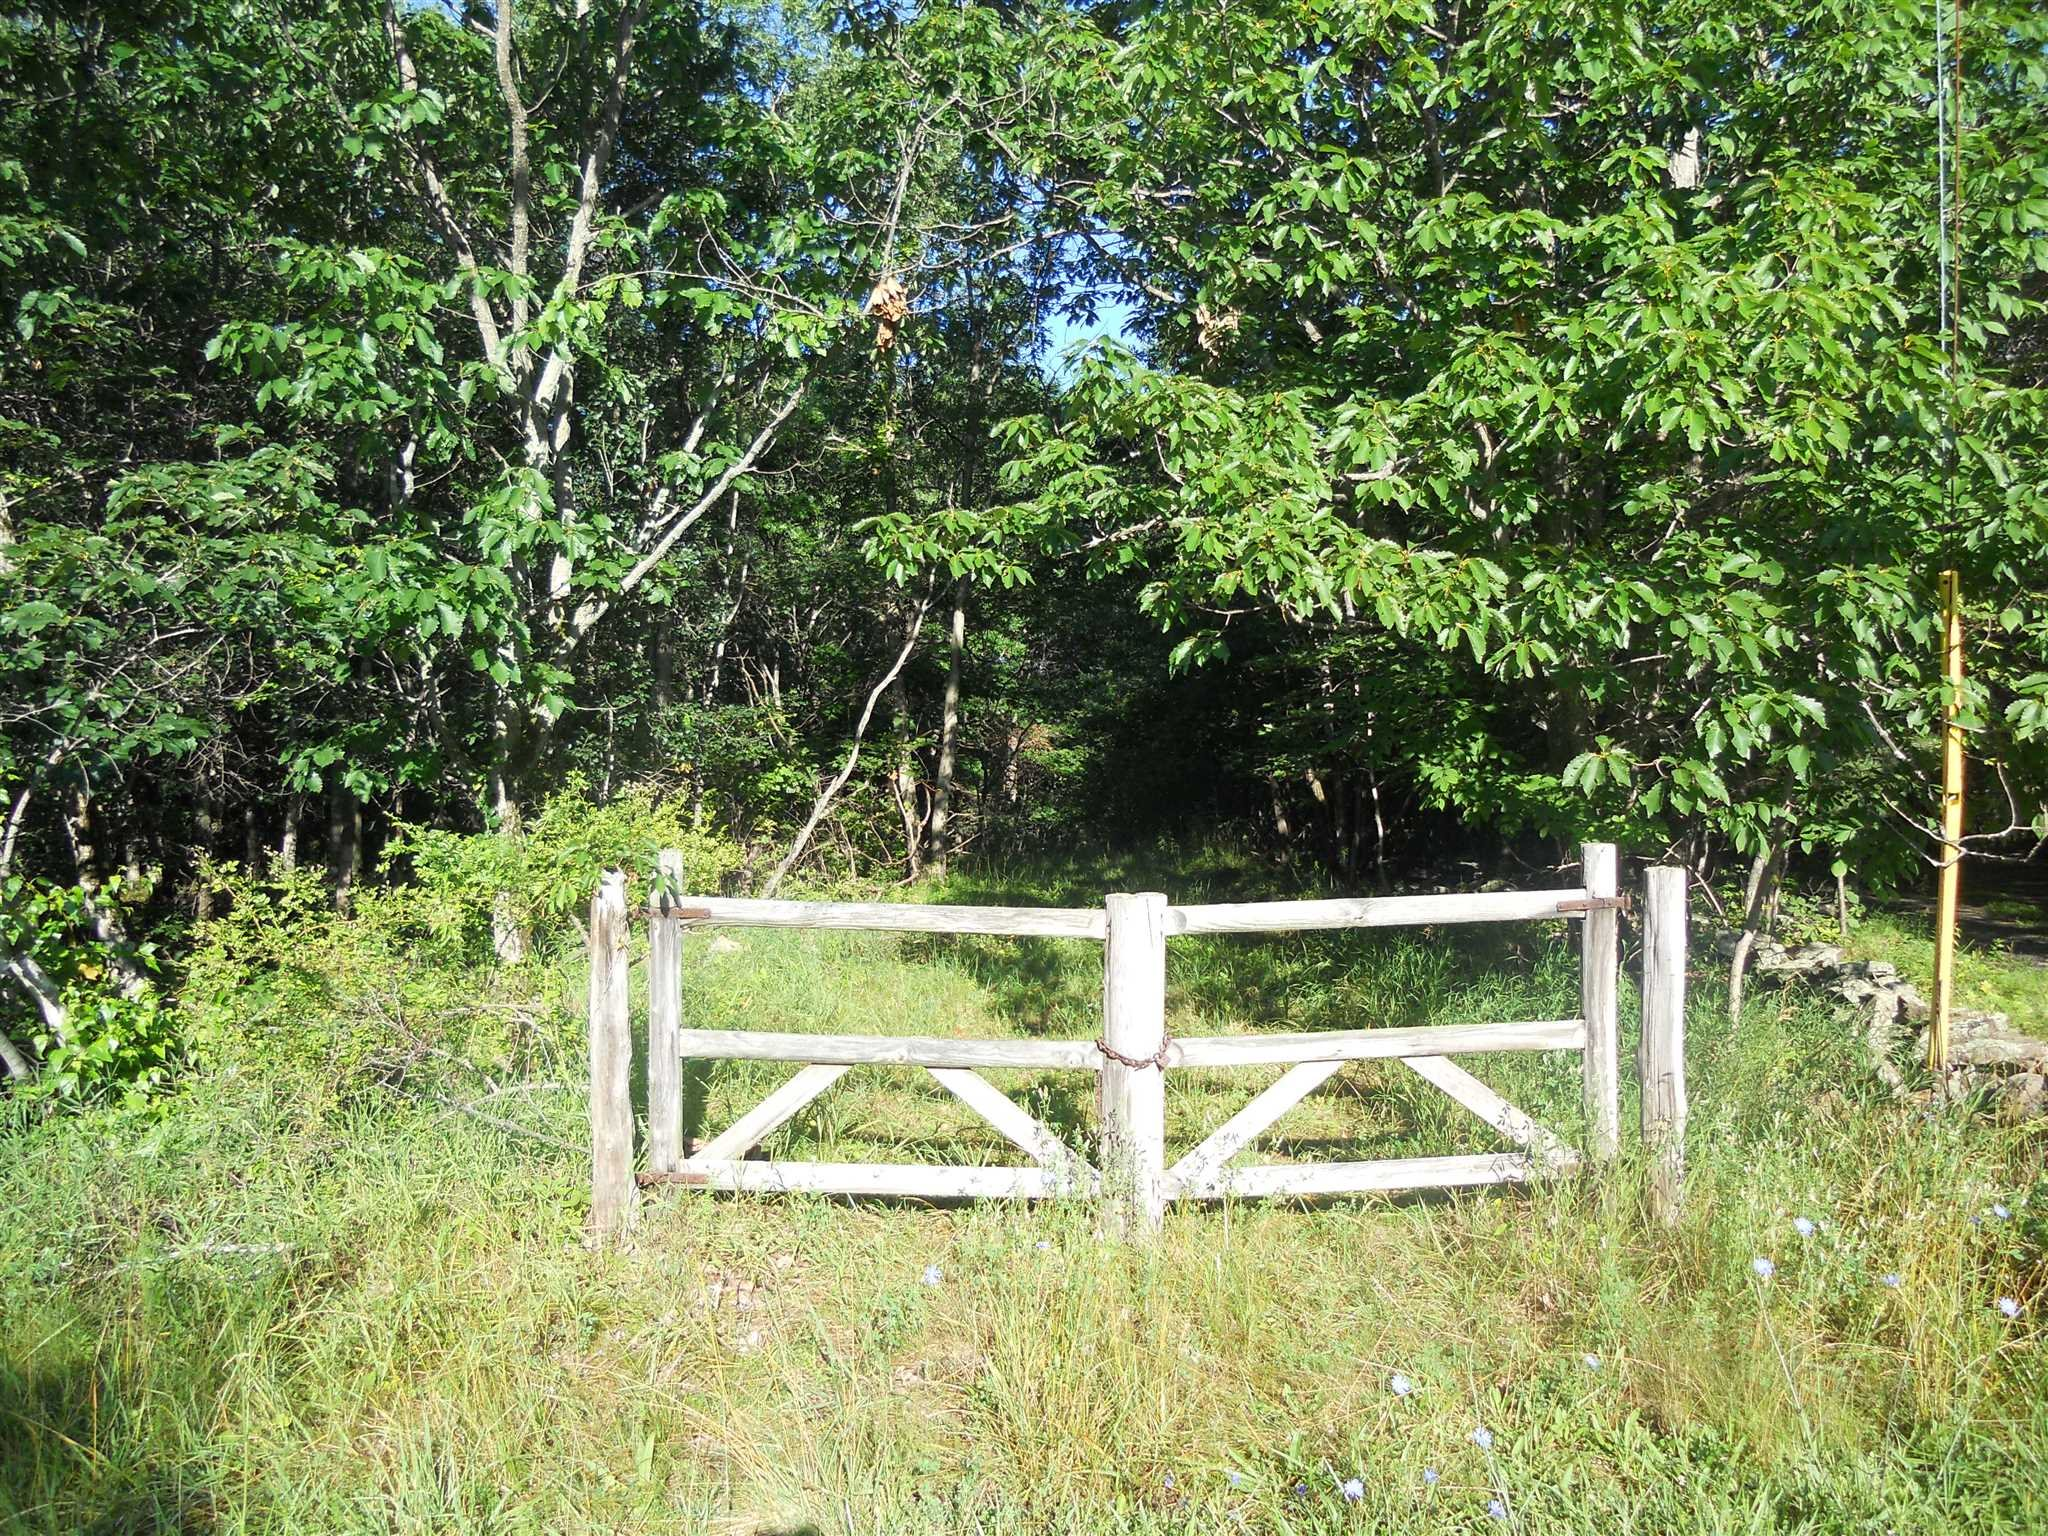 Land for Sale at 1013 OLD QUAKER HILL ROAD 1013 OLD QUAKER HILL ROAD Pawling, New York 12564 United States